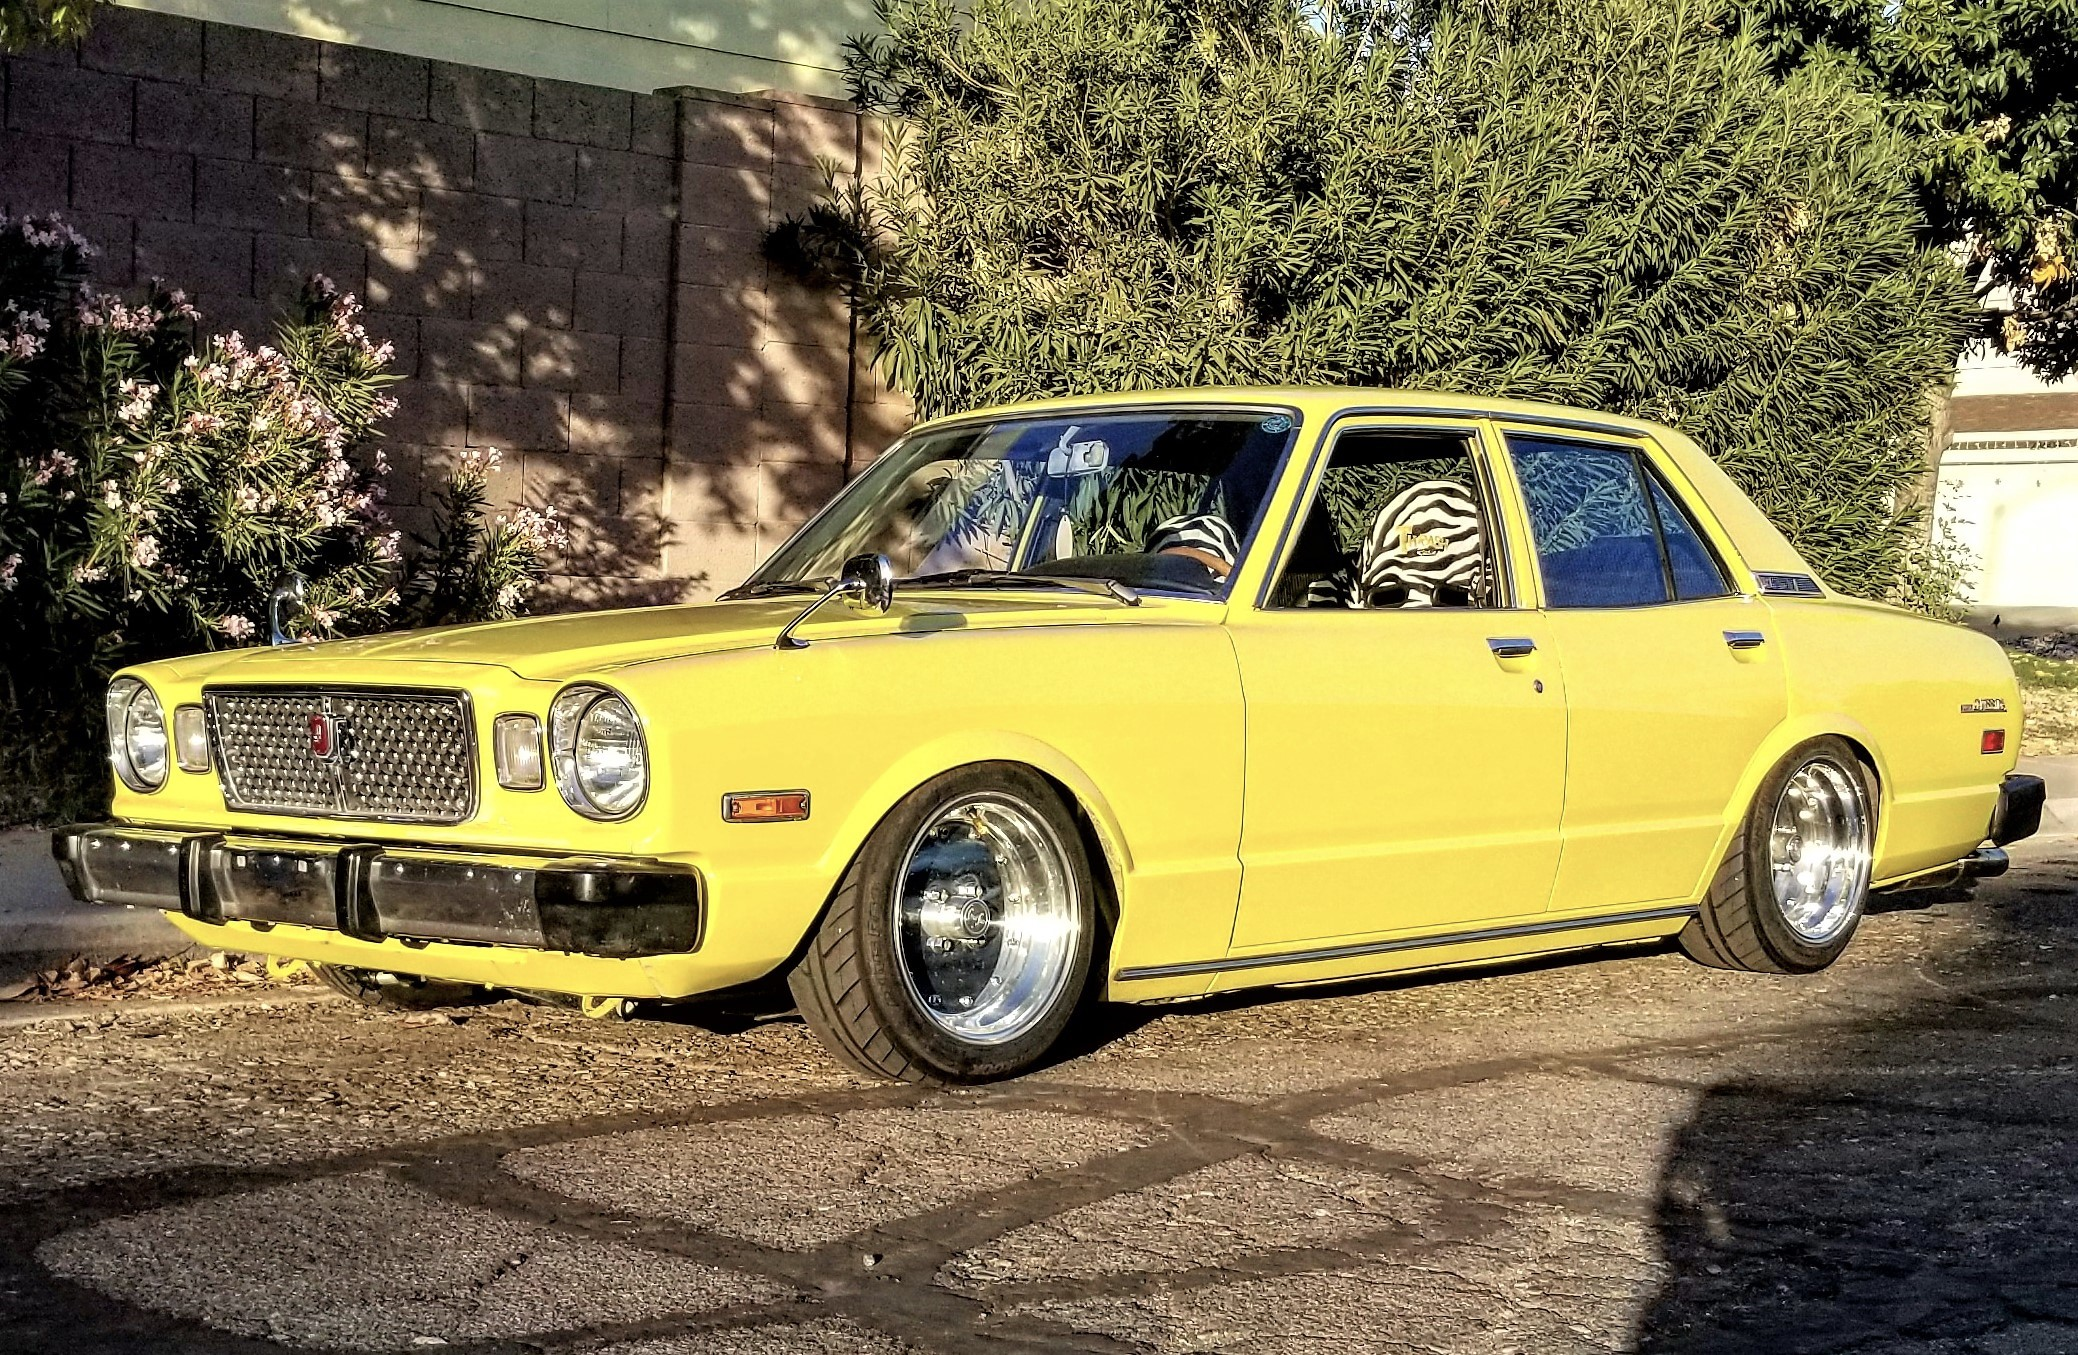 Future Classics Car Show looks to the new generation of enthusiasts